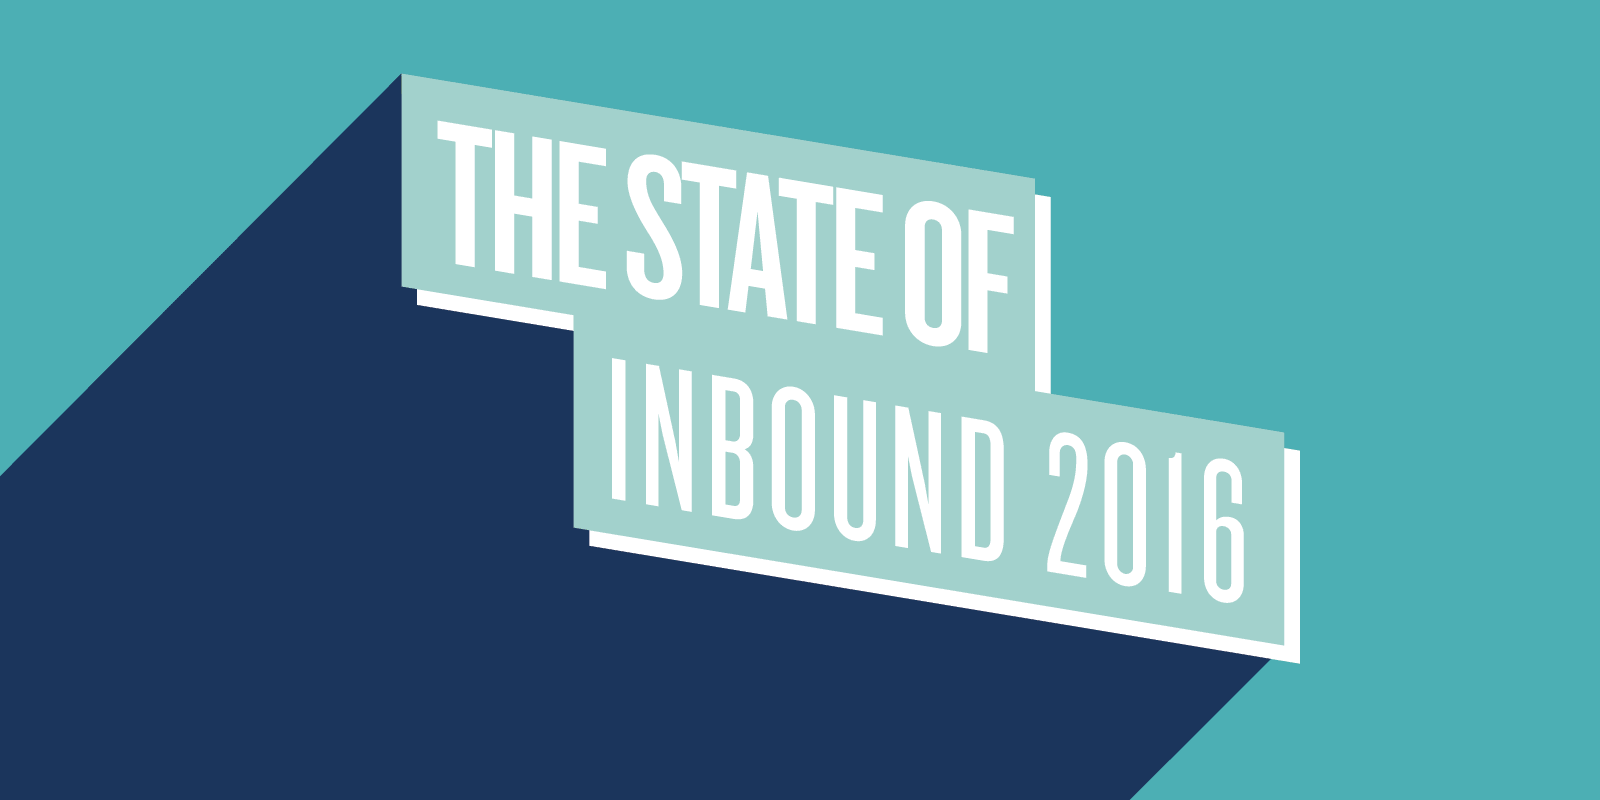 HubSpot's State of Inbound 2016 Report Underscores a Need for Lead Generation and Conversion in EMEA